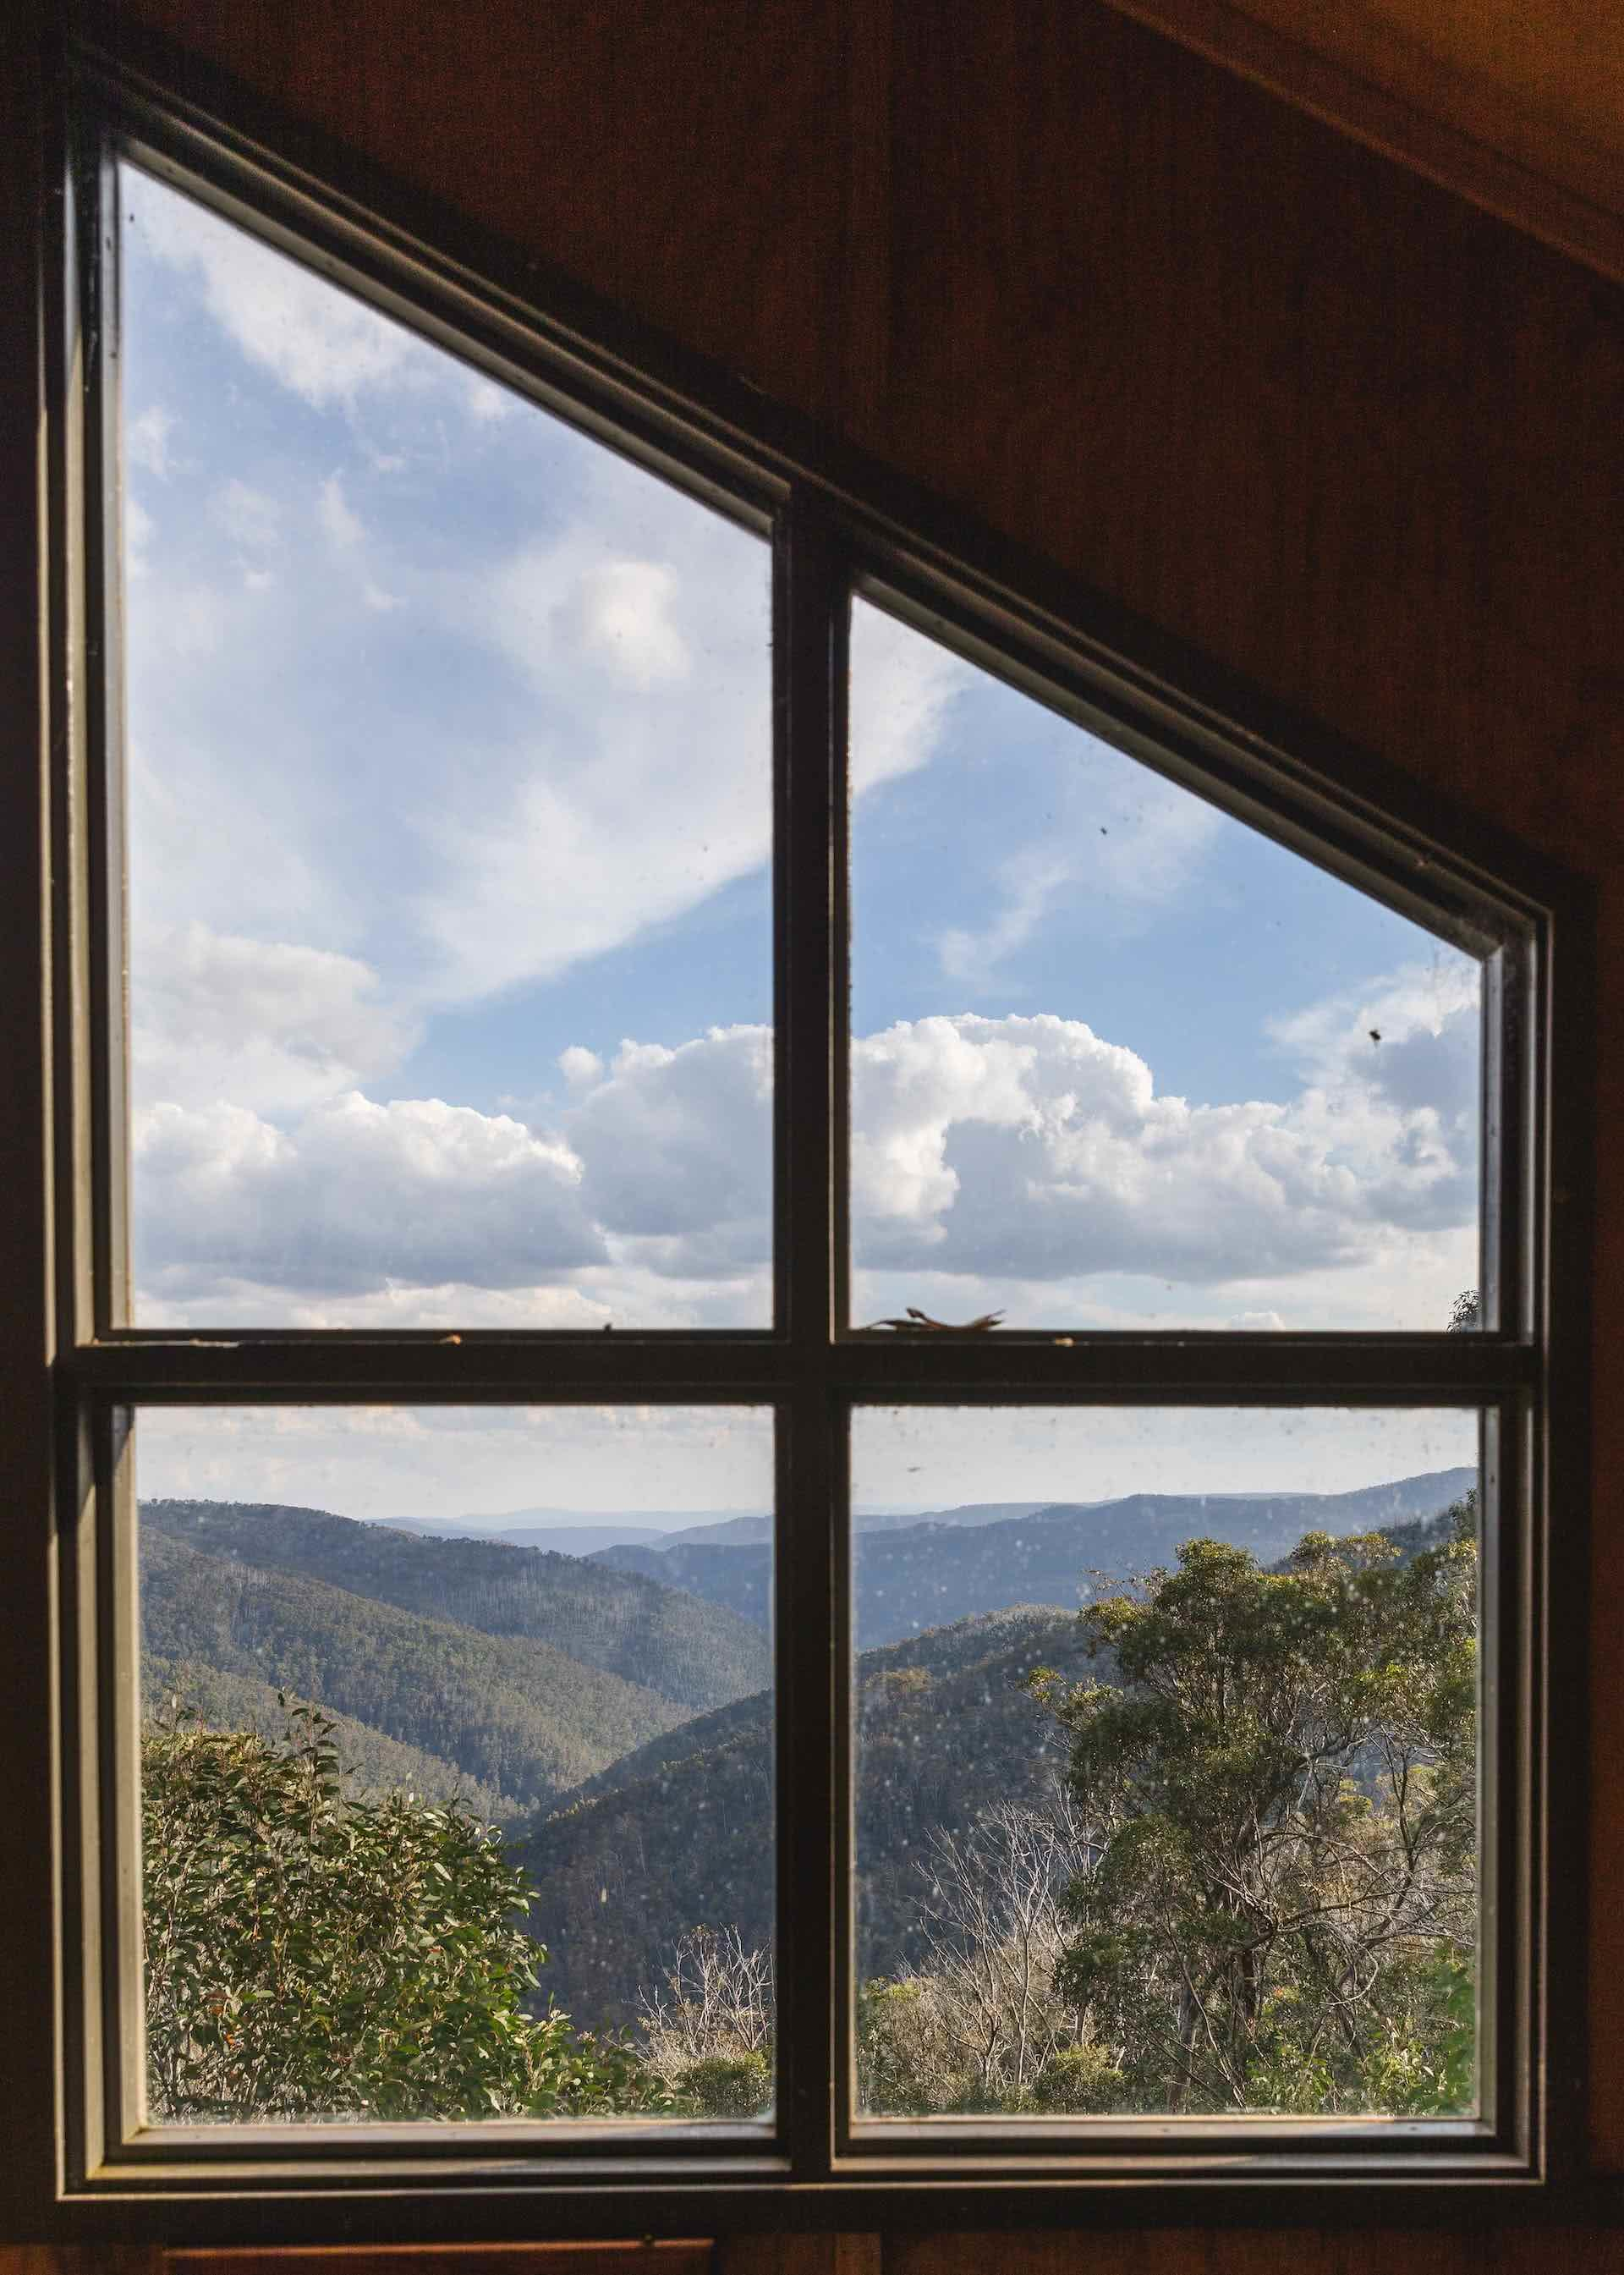 Conquer Mt Howitt And Tame The Crosscut Saw (VIC), Jamie Humby, mountains, trees, cabin, window